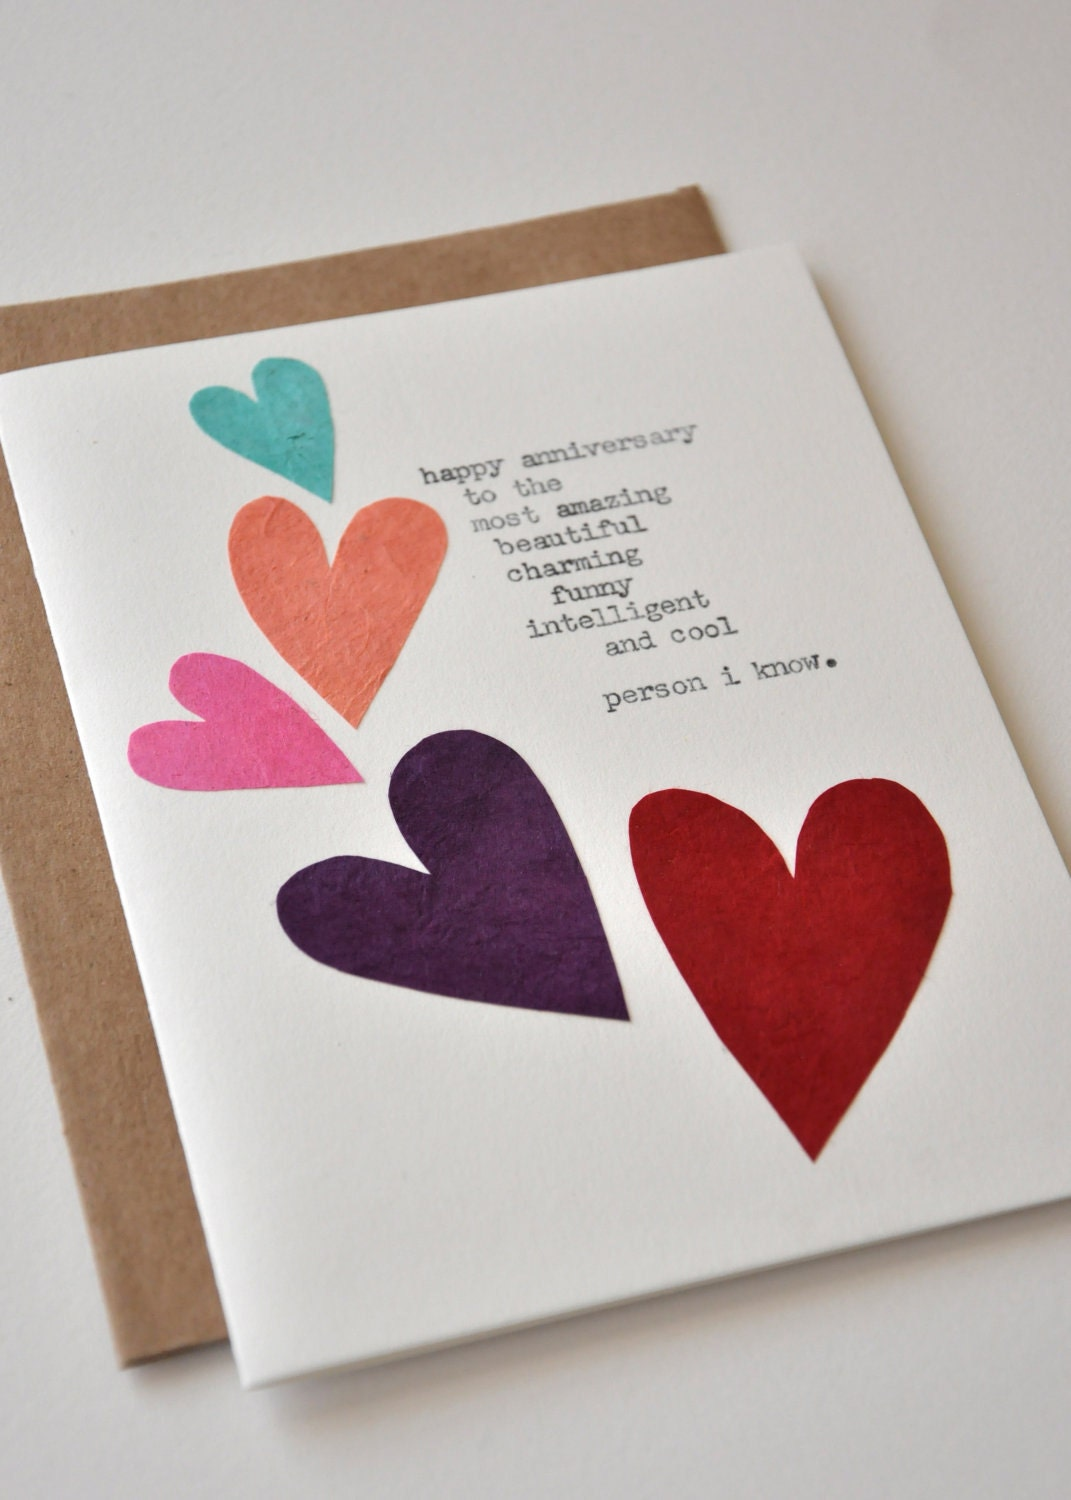 ... Handmade Greeting Card - Anniversary Card for Wife or Husband on Etsy